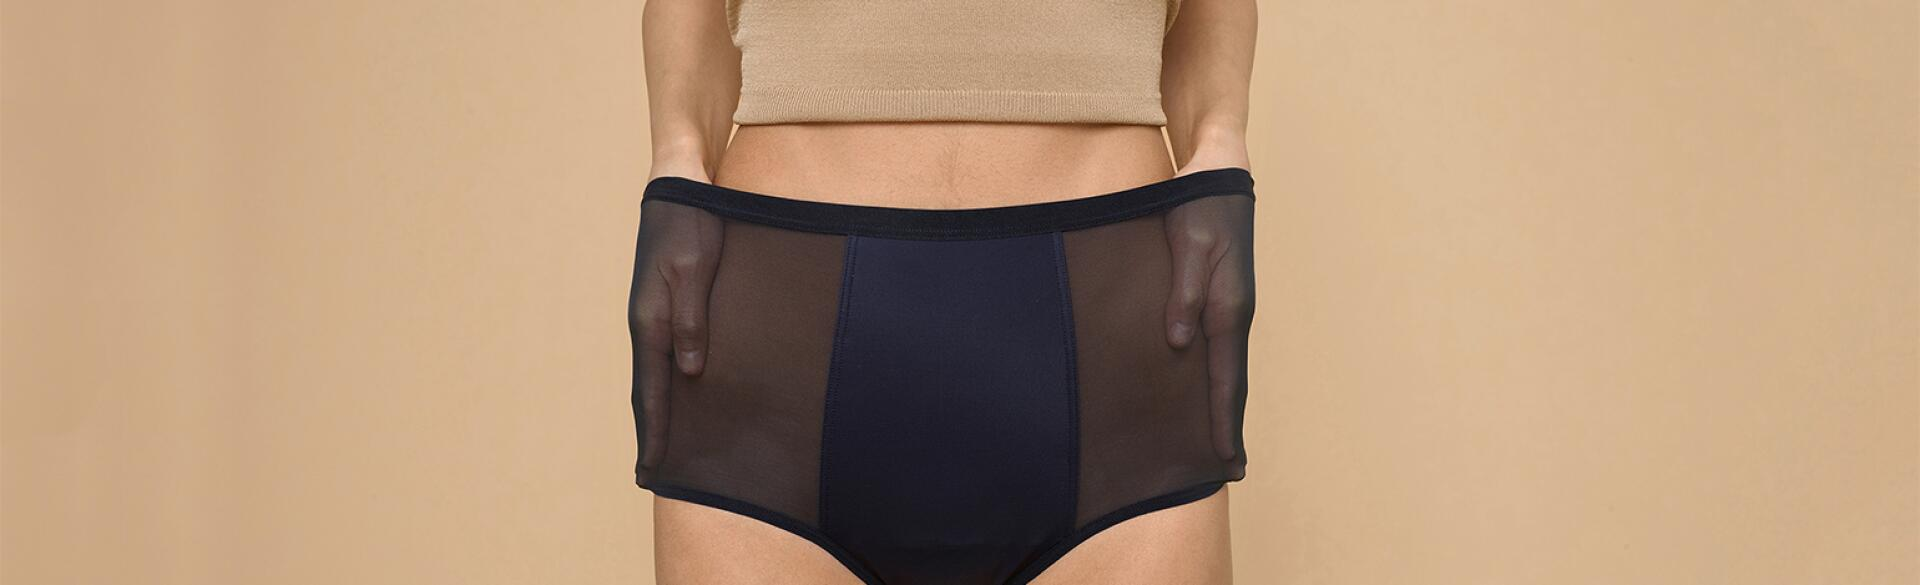 A woman stretches out the sides of her Thinx hi-waist panties, which can double for bladder leakage.